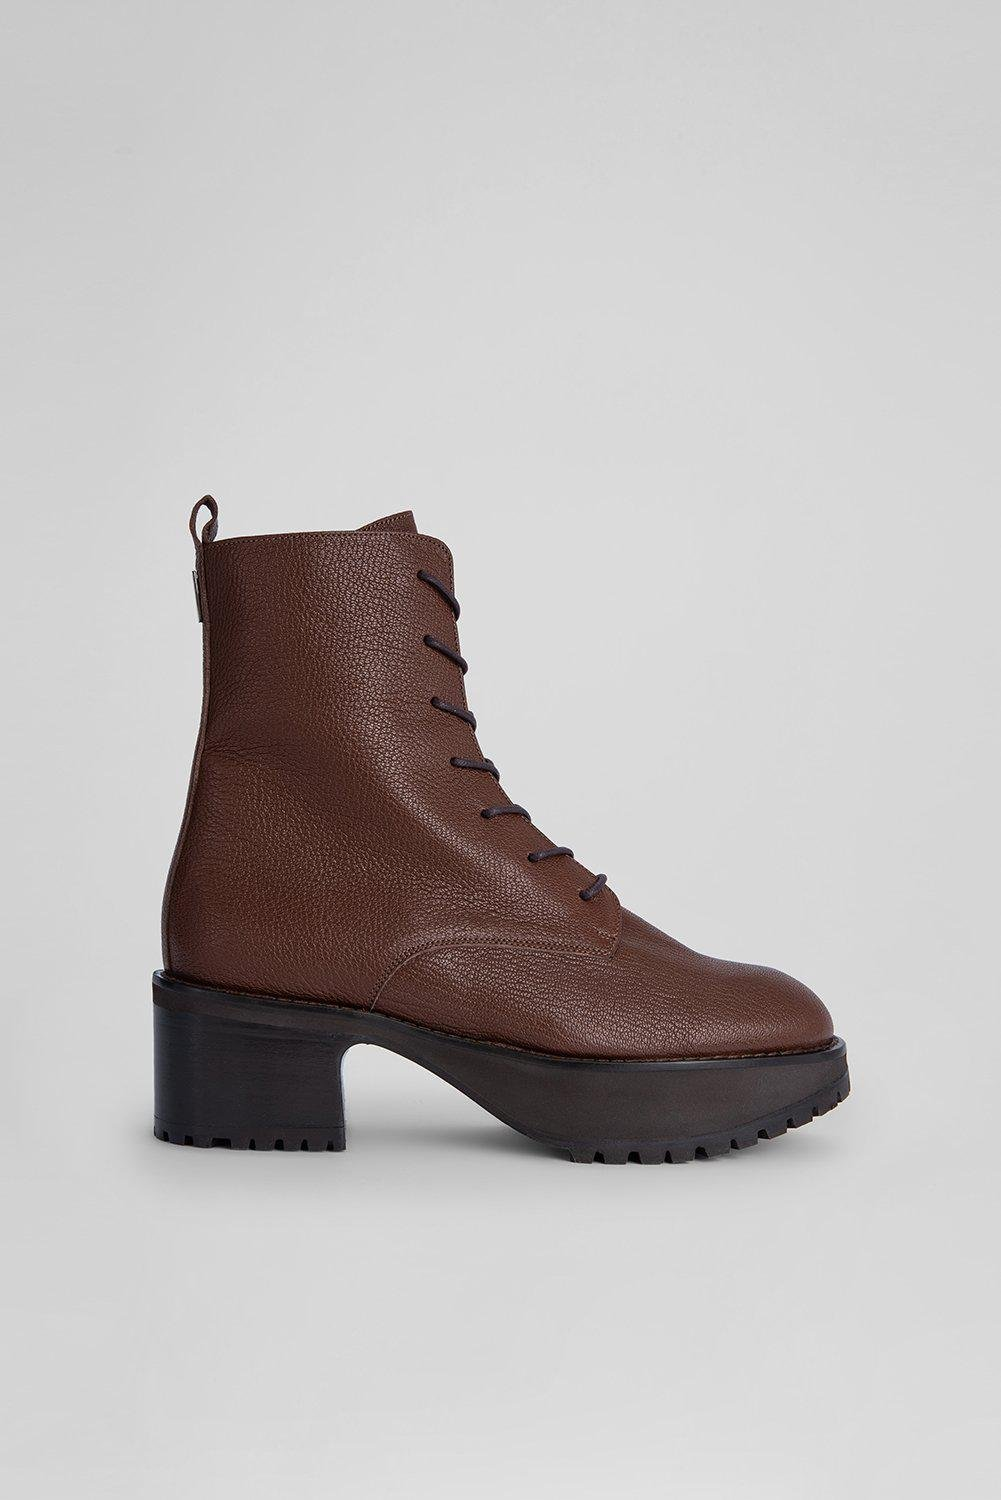 Cobain Tabac Grained Leather